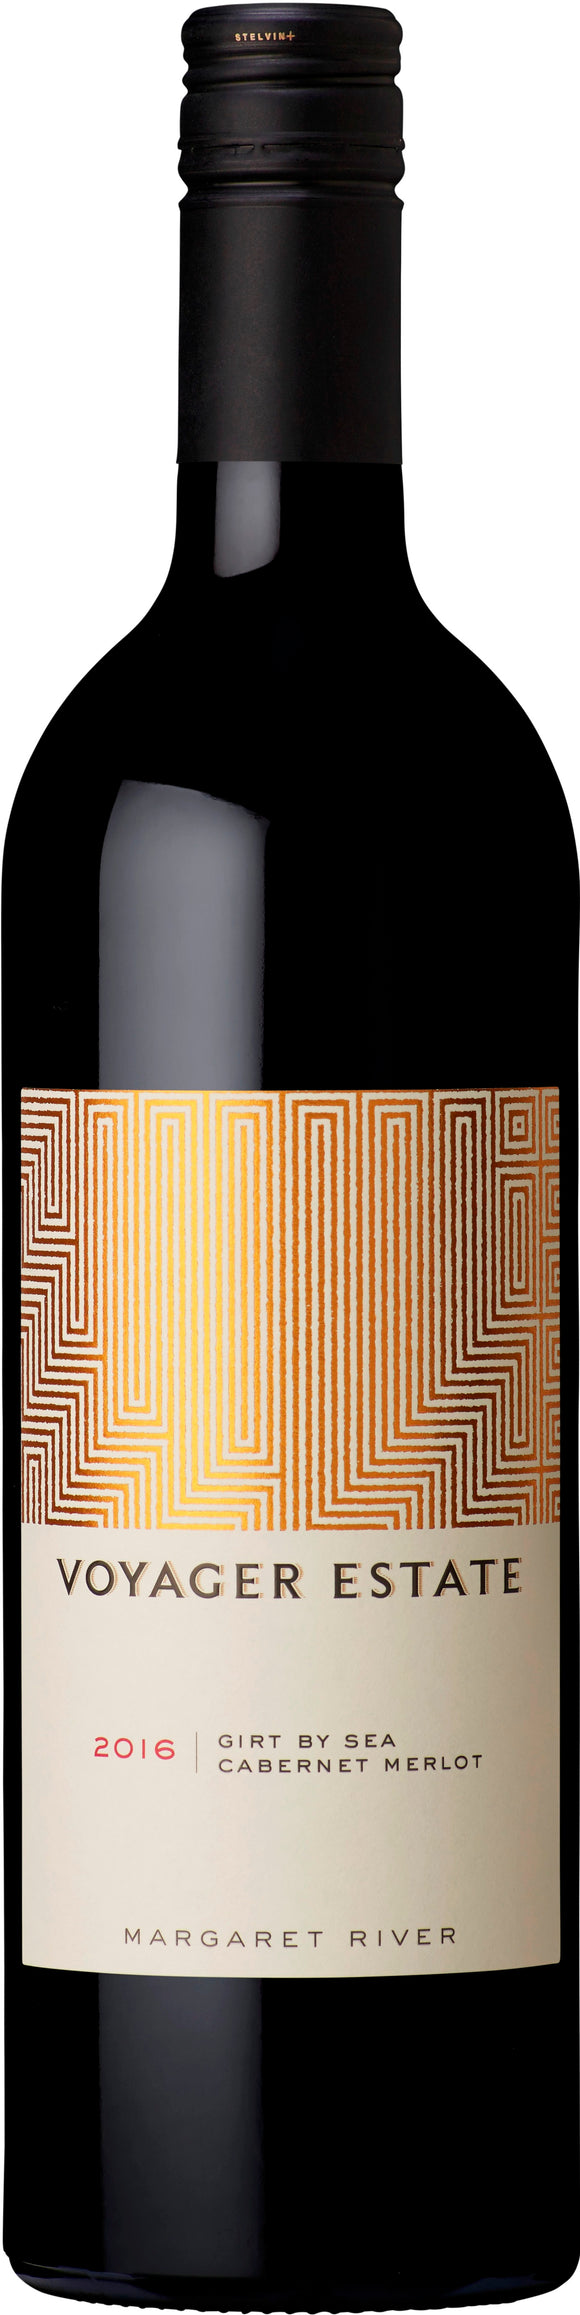 Voyager Estate Girt by Sea Cabernet Merlot